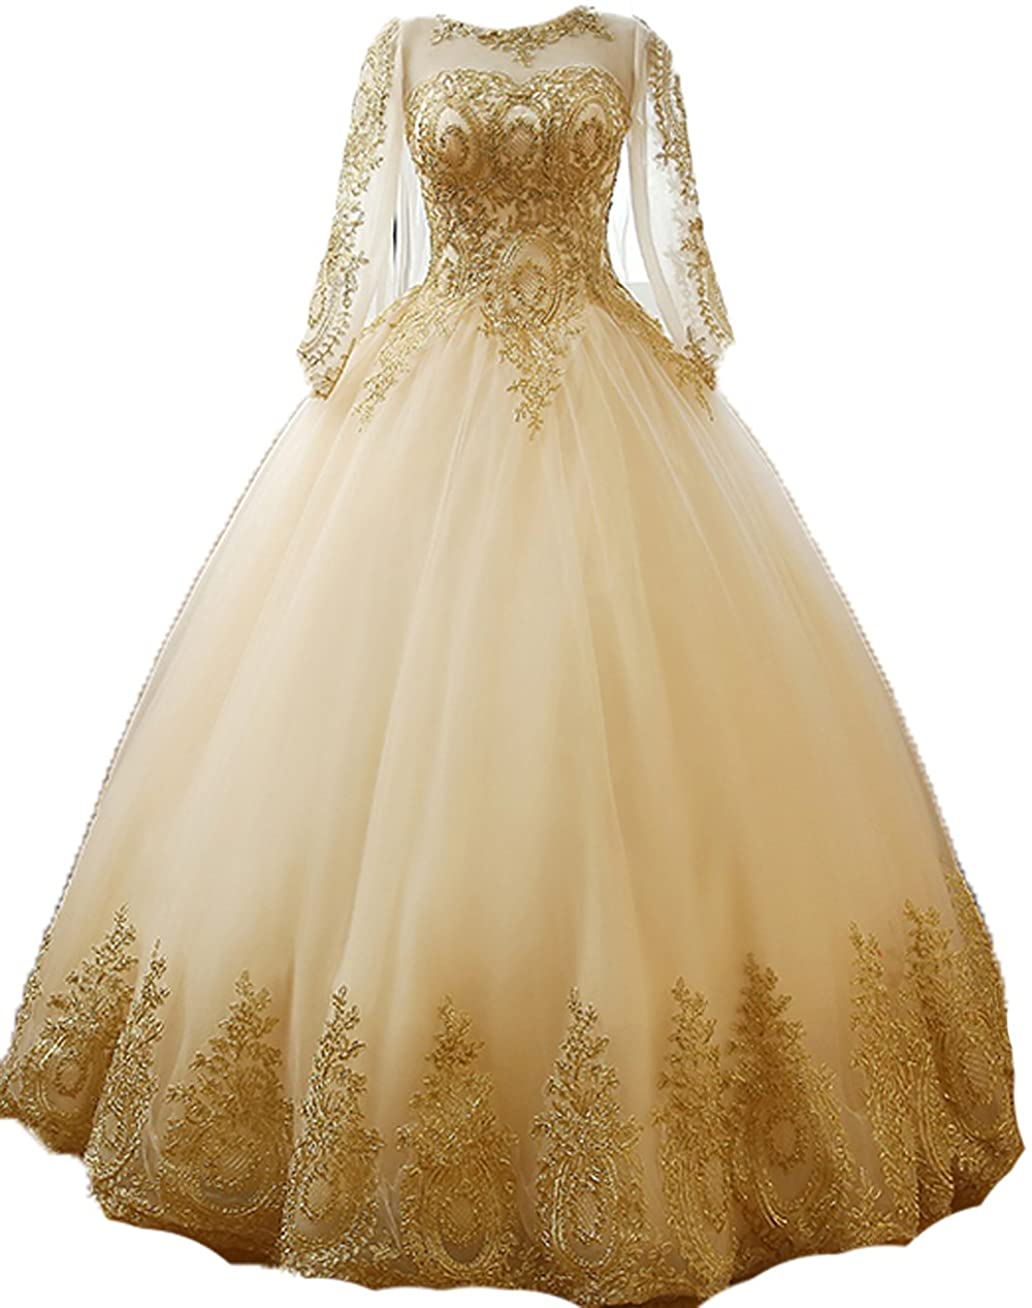 BessDress Gold Lace Appplique Quinceanera Dresses Long Sleeves Prom Ball Gown BD389